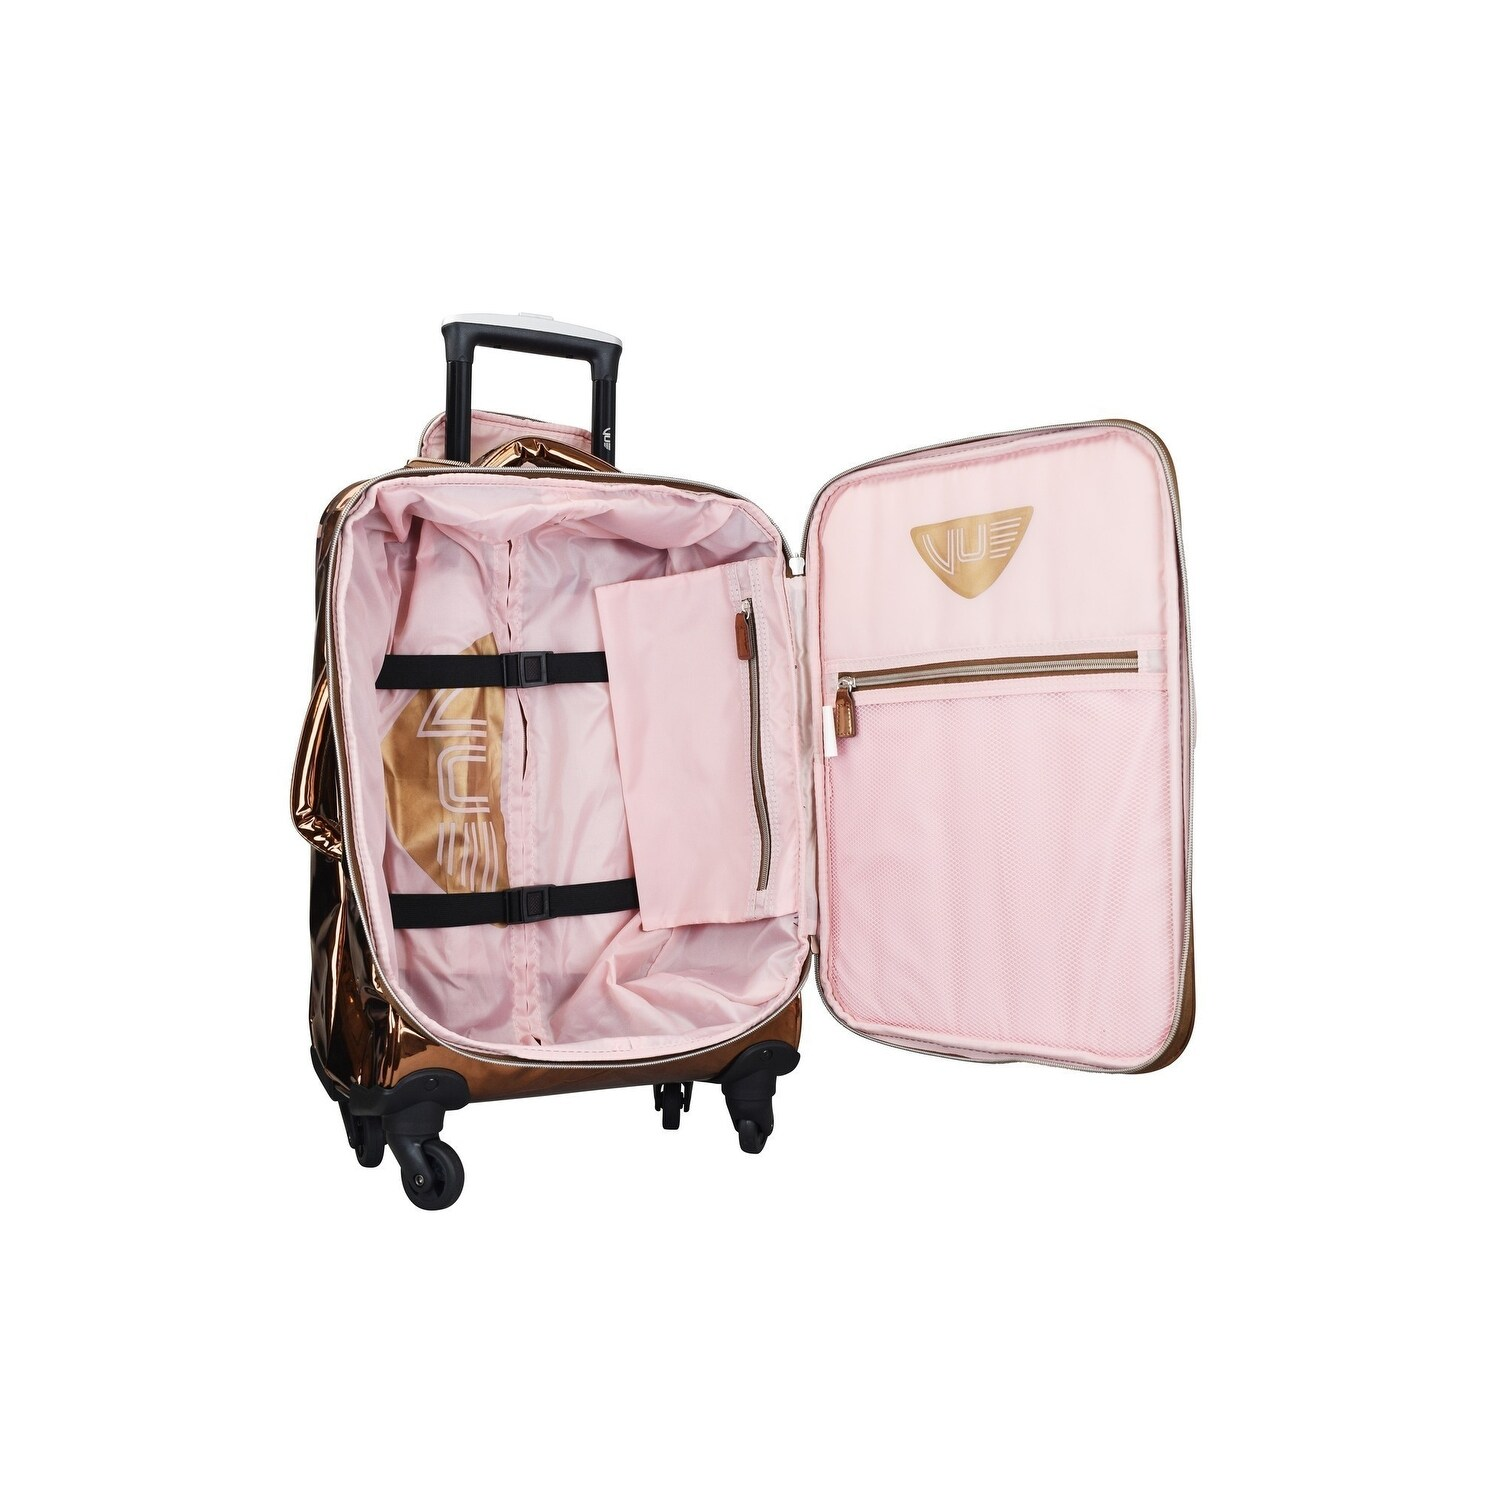 9bcf14666 Shop ATM Vue Metallic Collection Rose Gold Premium Carry On 3 Pc Luggage Set  - One Size - Free Shipping Today - Overstock - 28299121